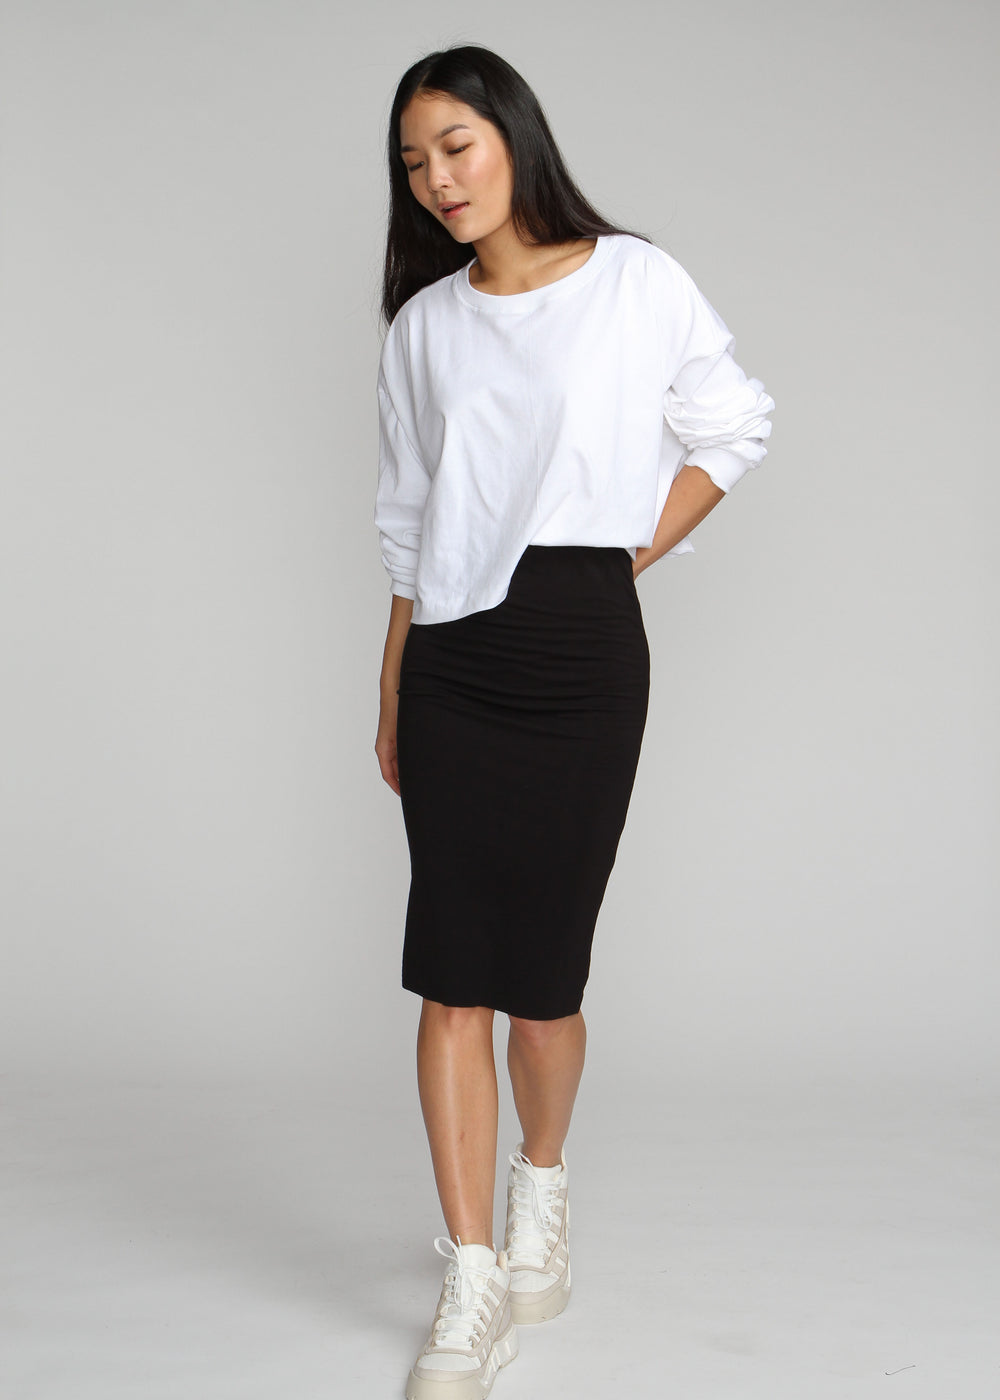 Tube Skirt - Black - The Frock NYC